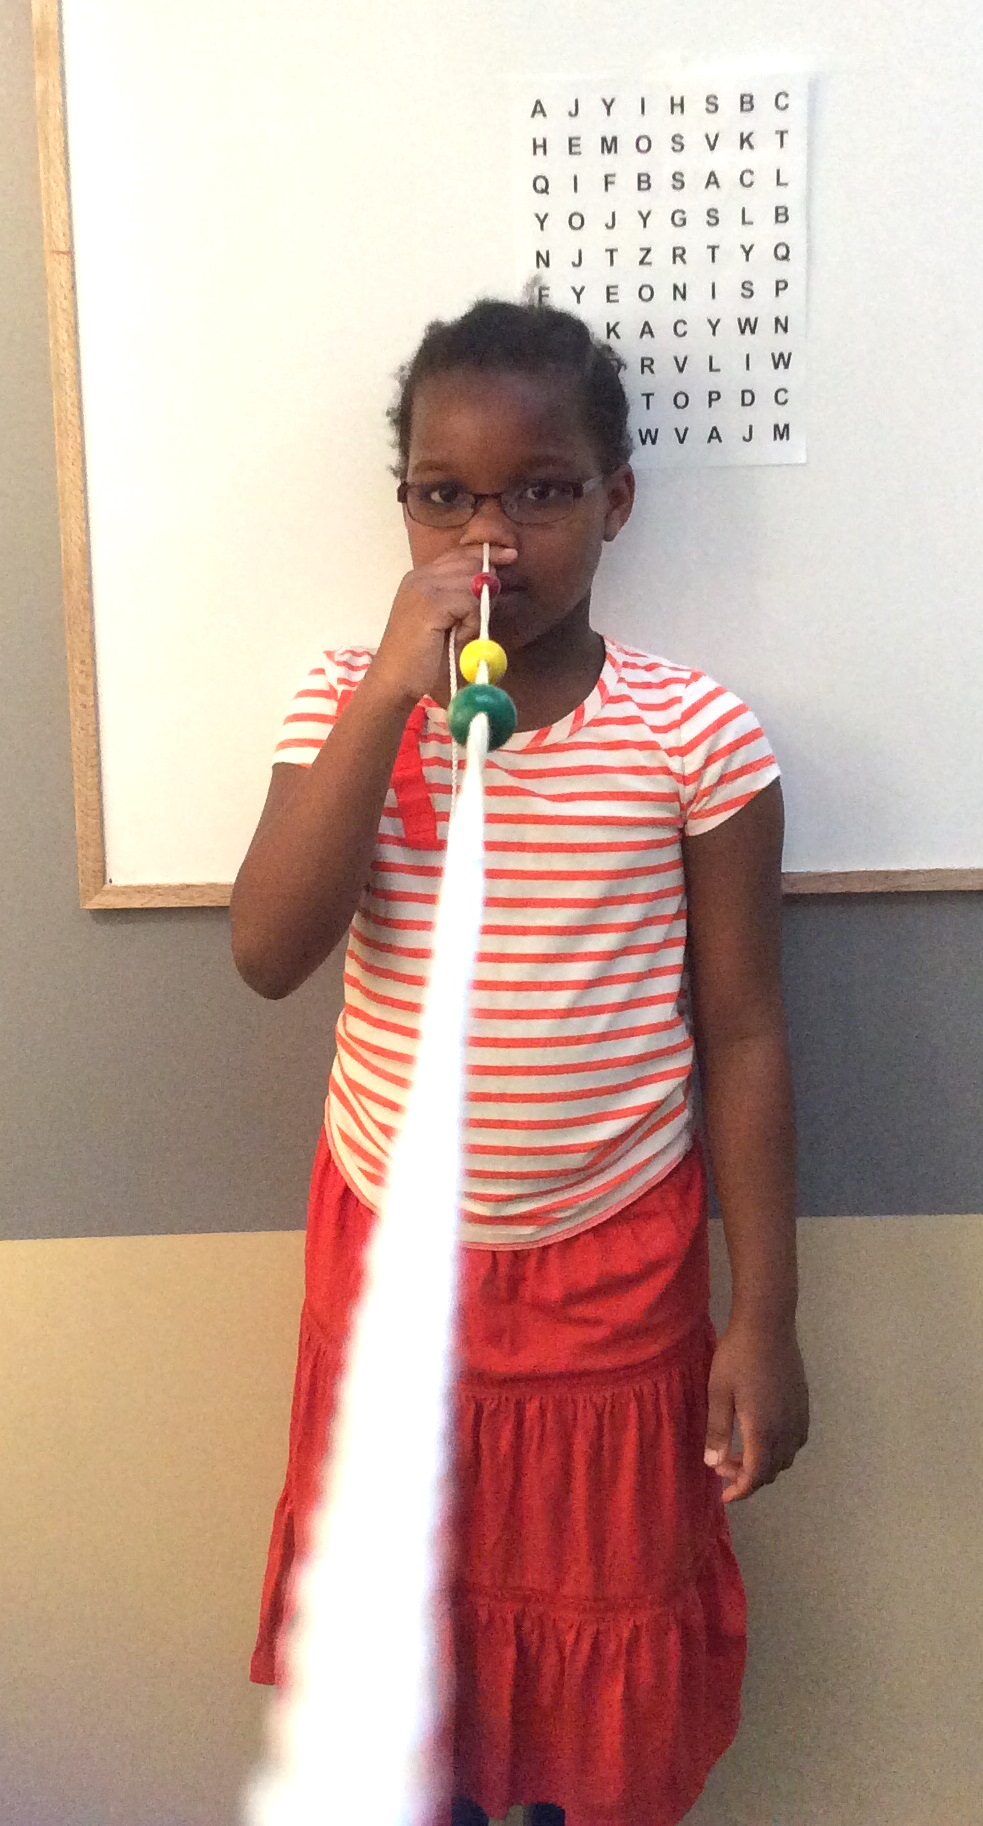 This is Grace doing a vision therapy exercise called the brock string, alternating her focus between different objects on the string.